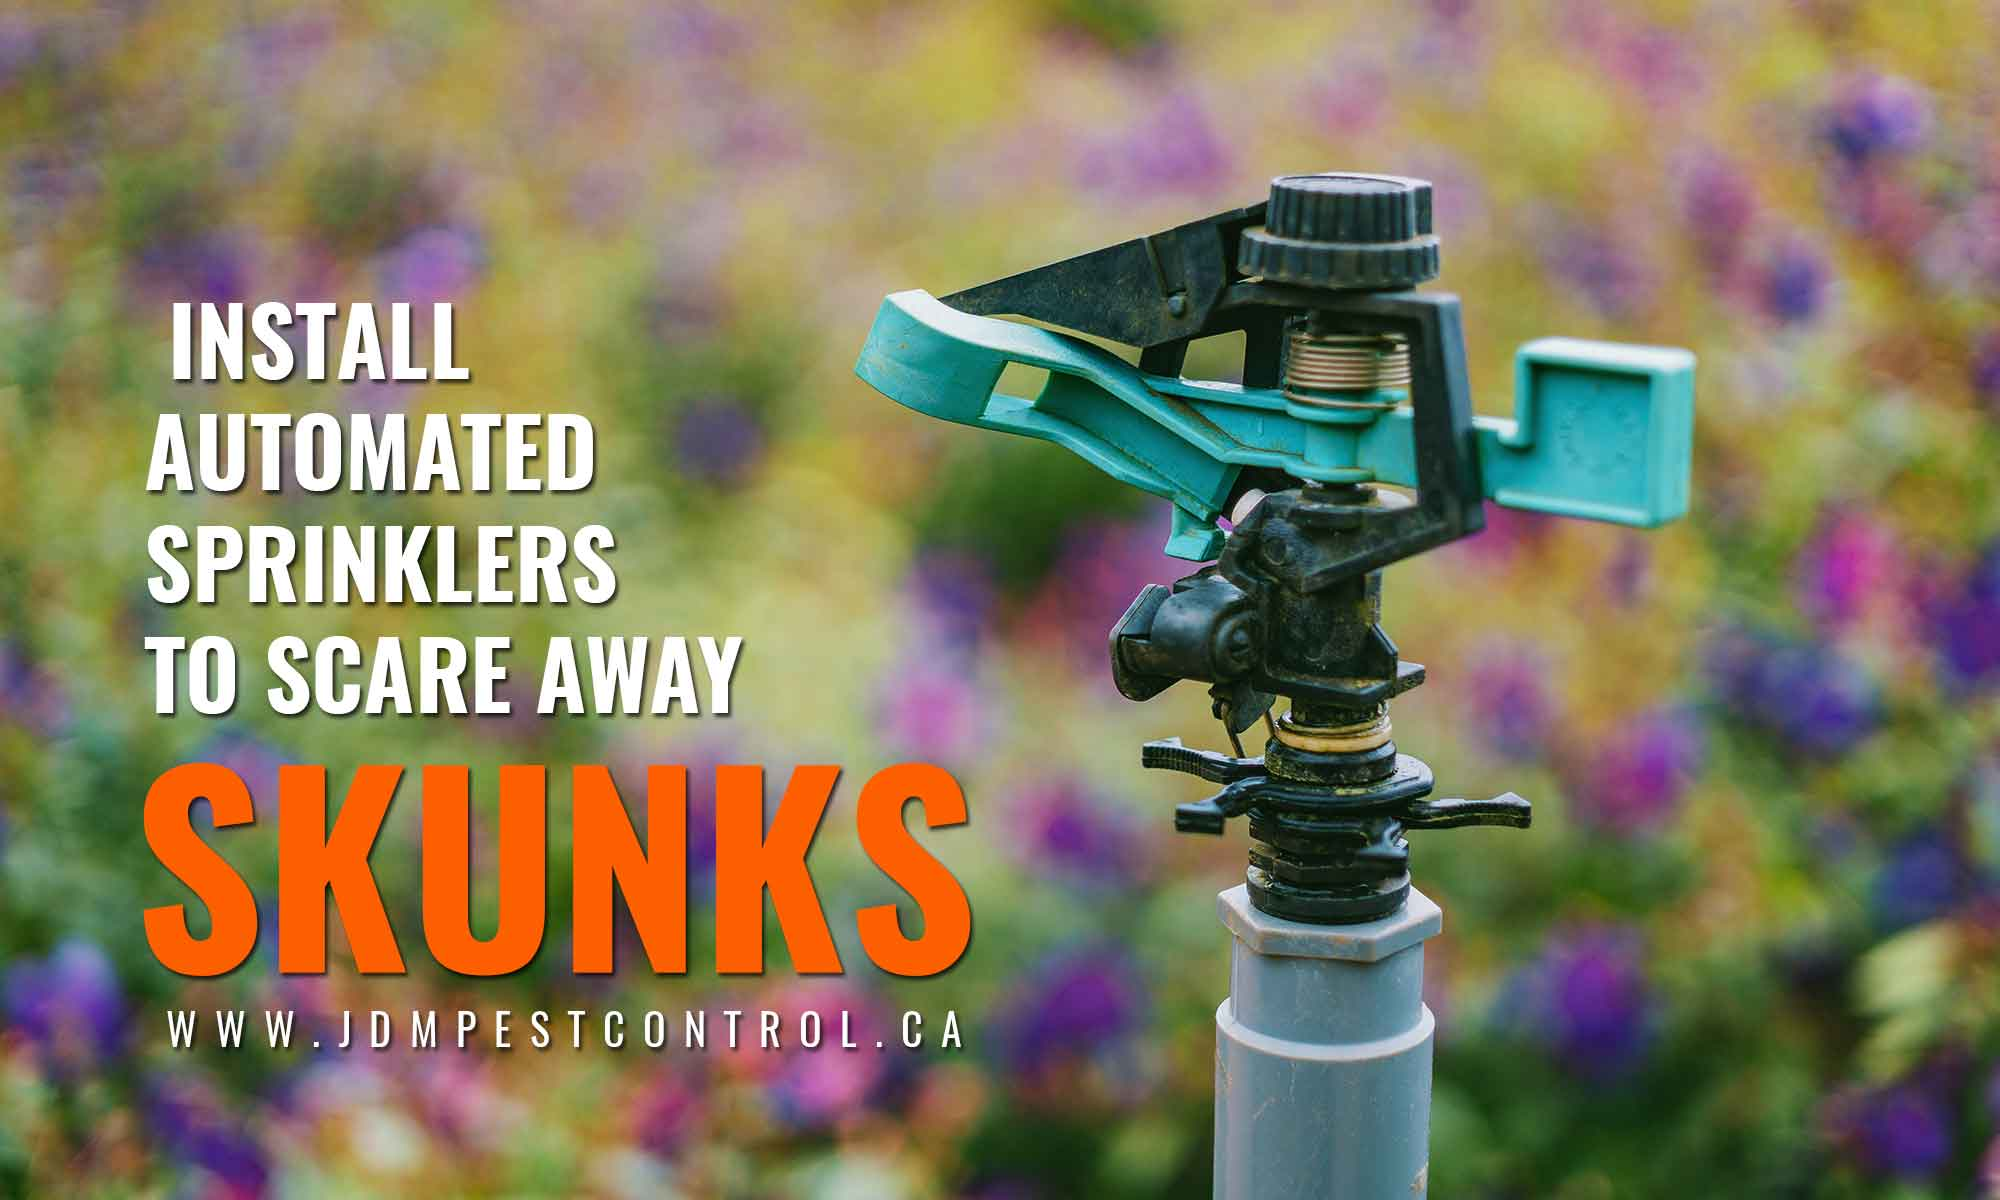 install automated sprinklers